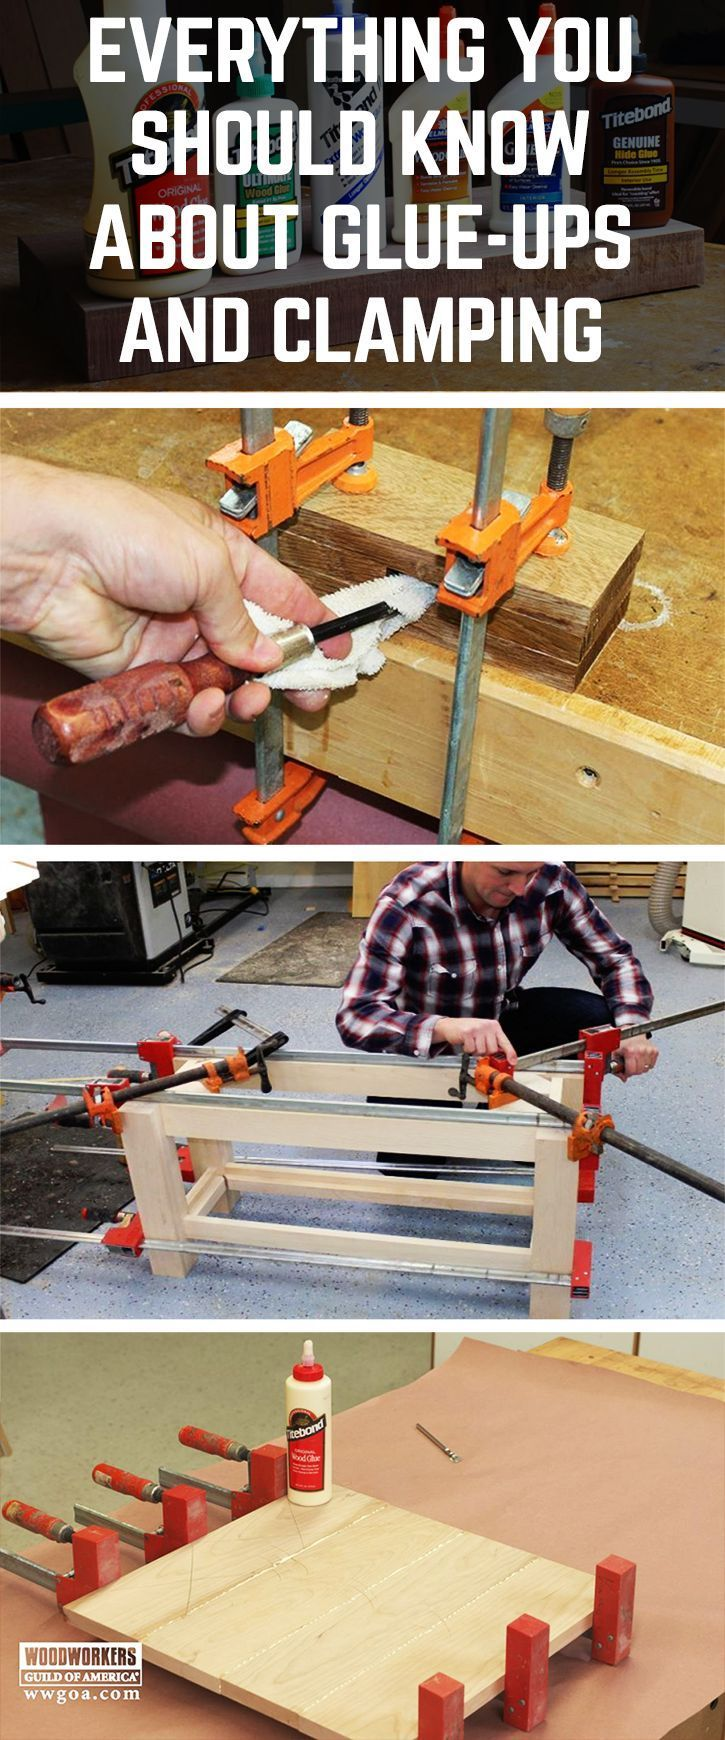 learn how to glue wood together and use clamps | woodworking